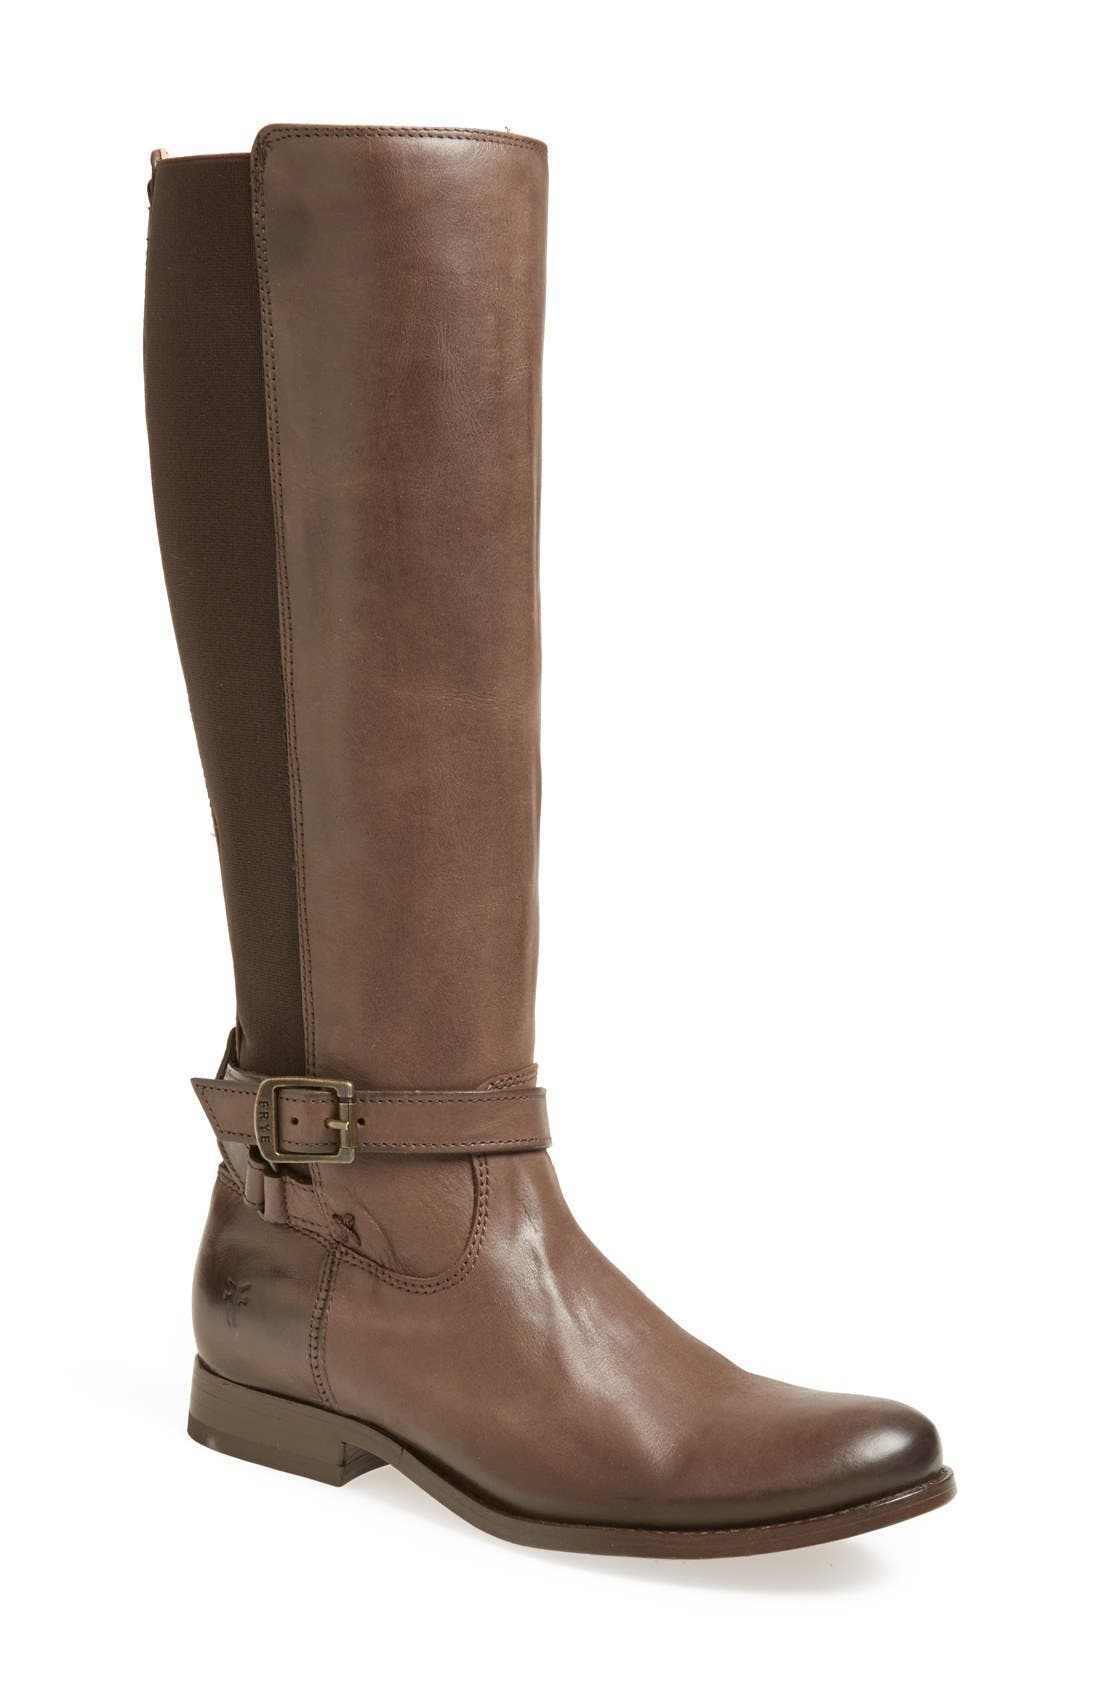 Alternate Image 1 Selected - Frye 'Melissa' Gore Zip Boot